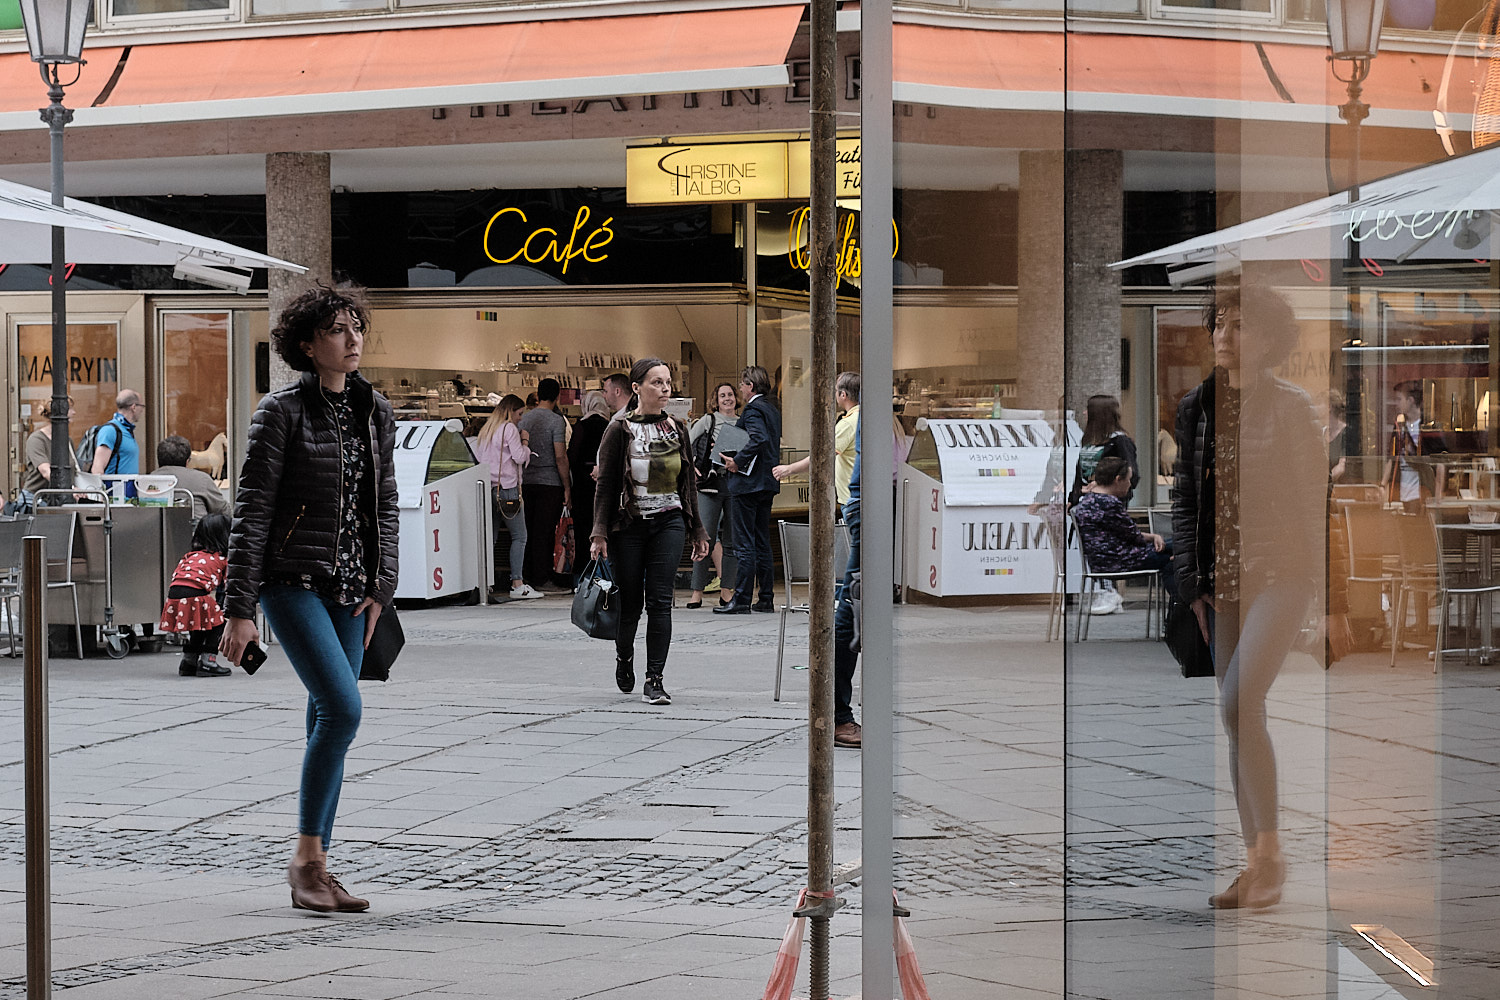 Bypassers and their reflexions in a shopping street in Munich